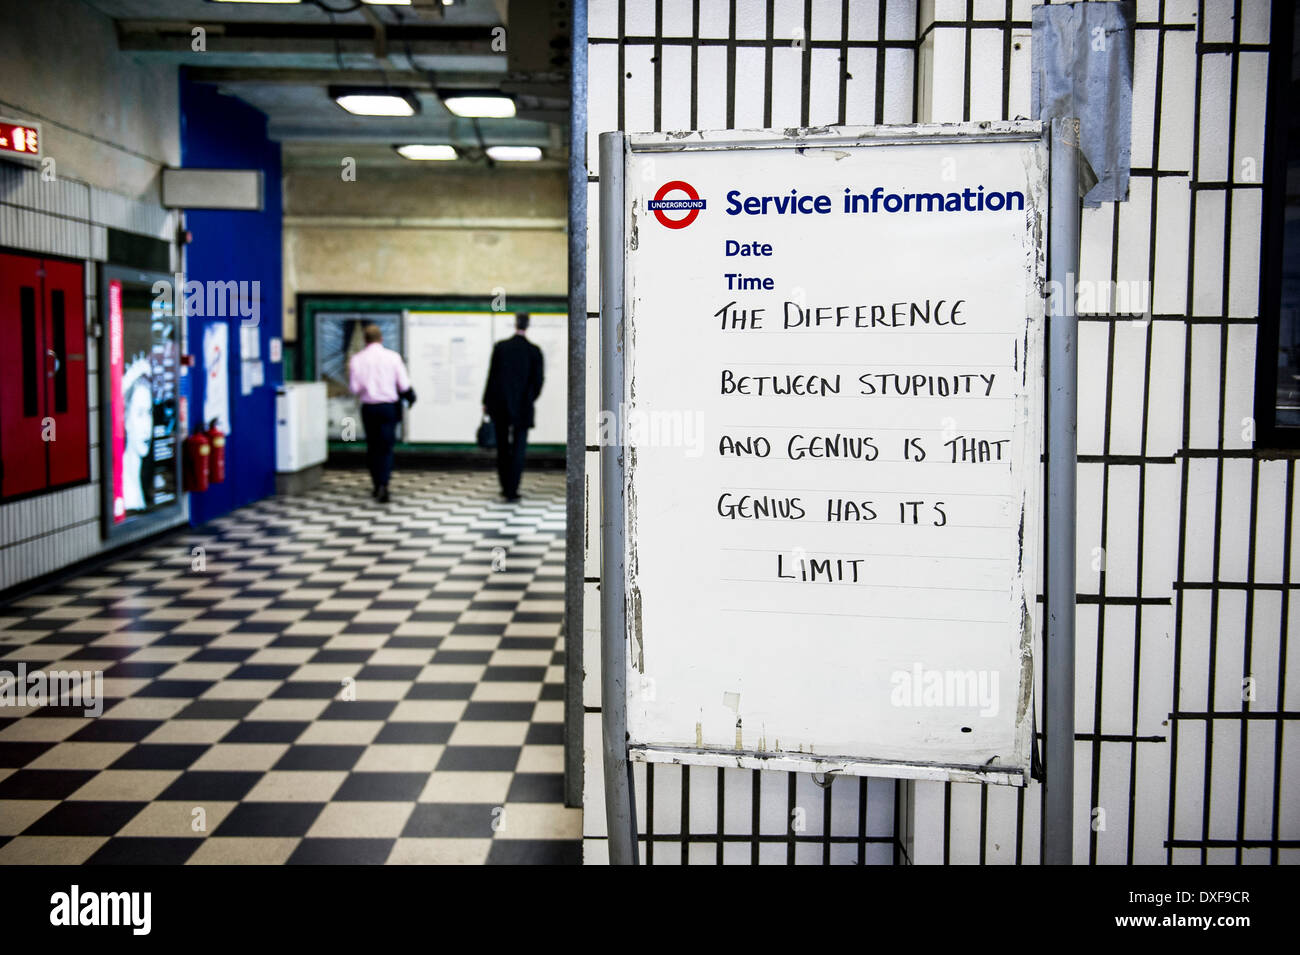 An amusing quote written on a sign. - Stock Image